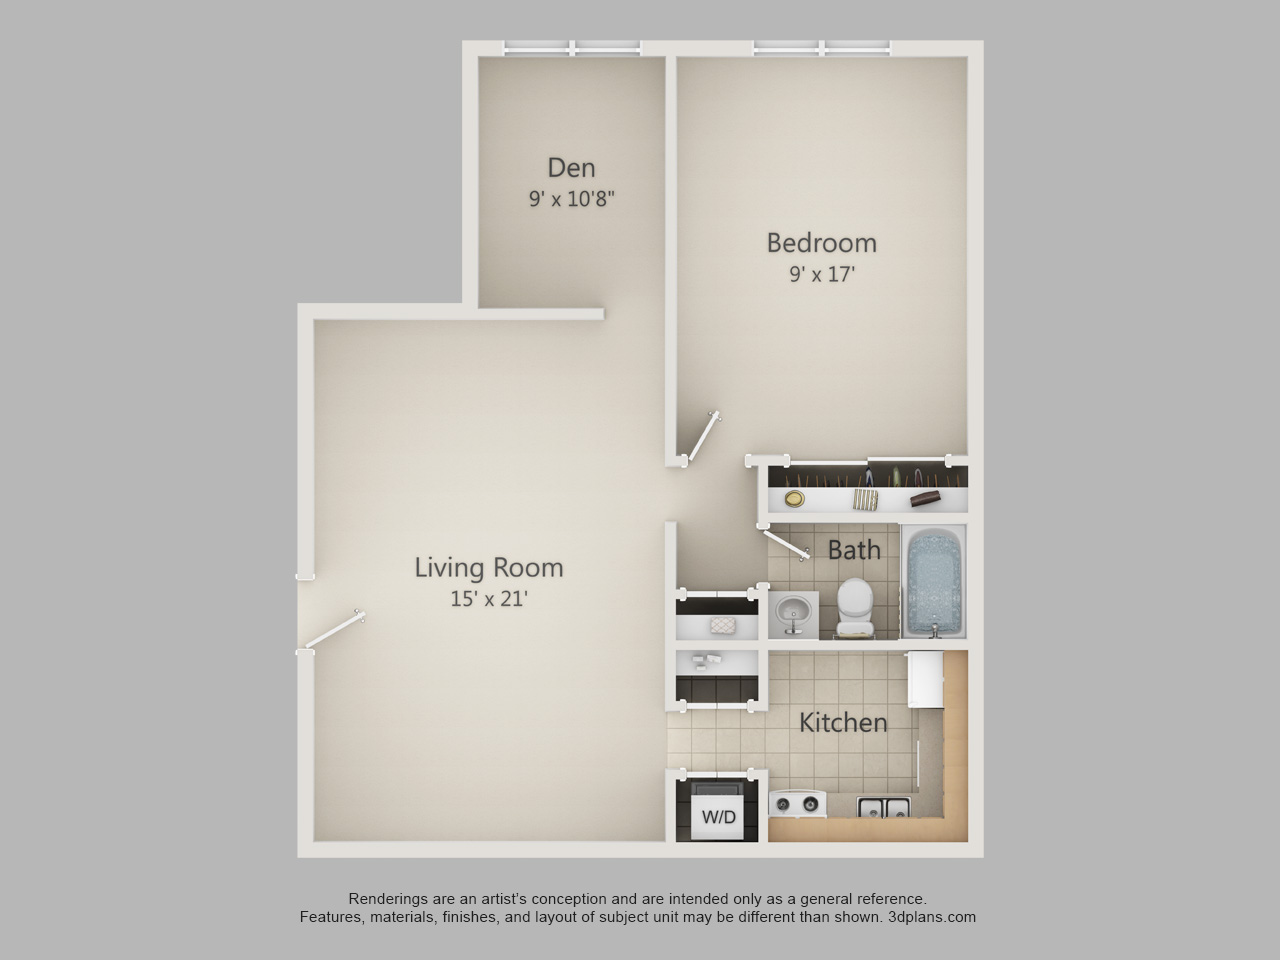 1 Bedroom apartments in Allentown